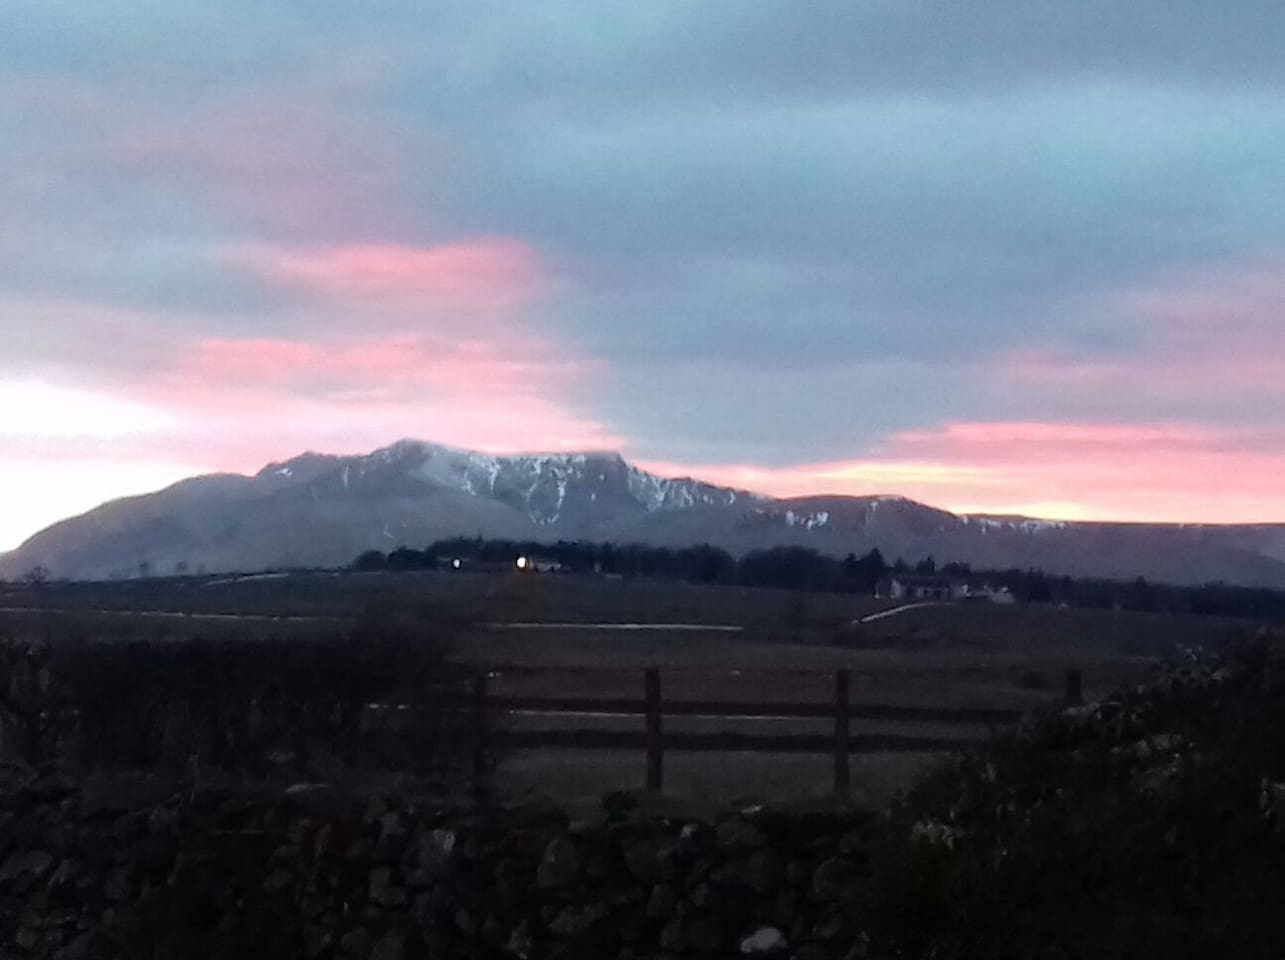 Sunset over Blencathra mountain from the garden of Lilac Trees